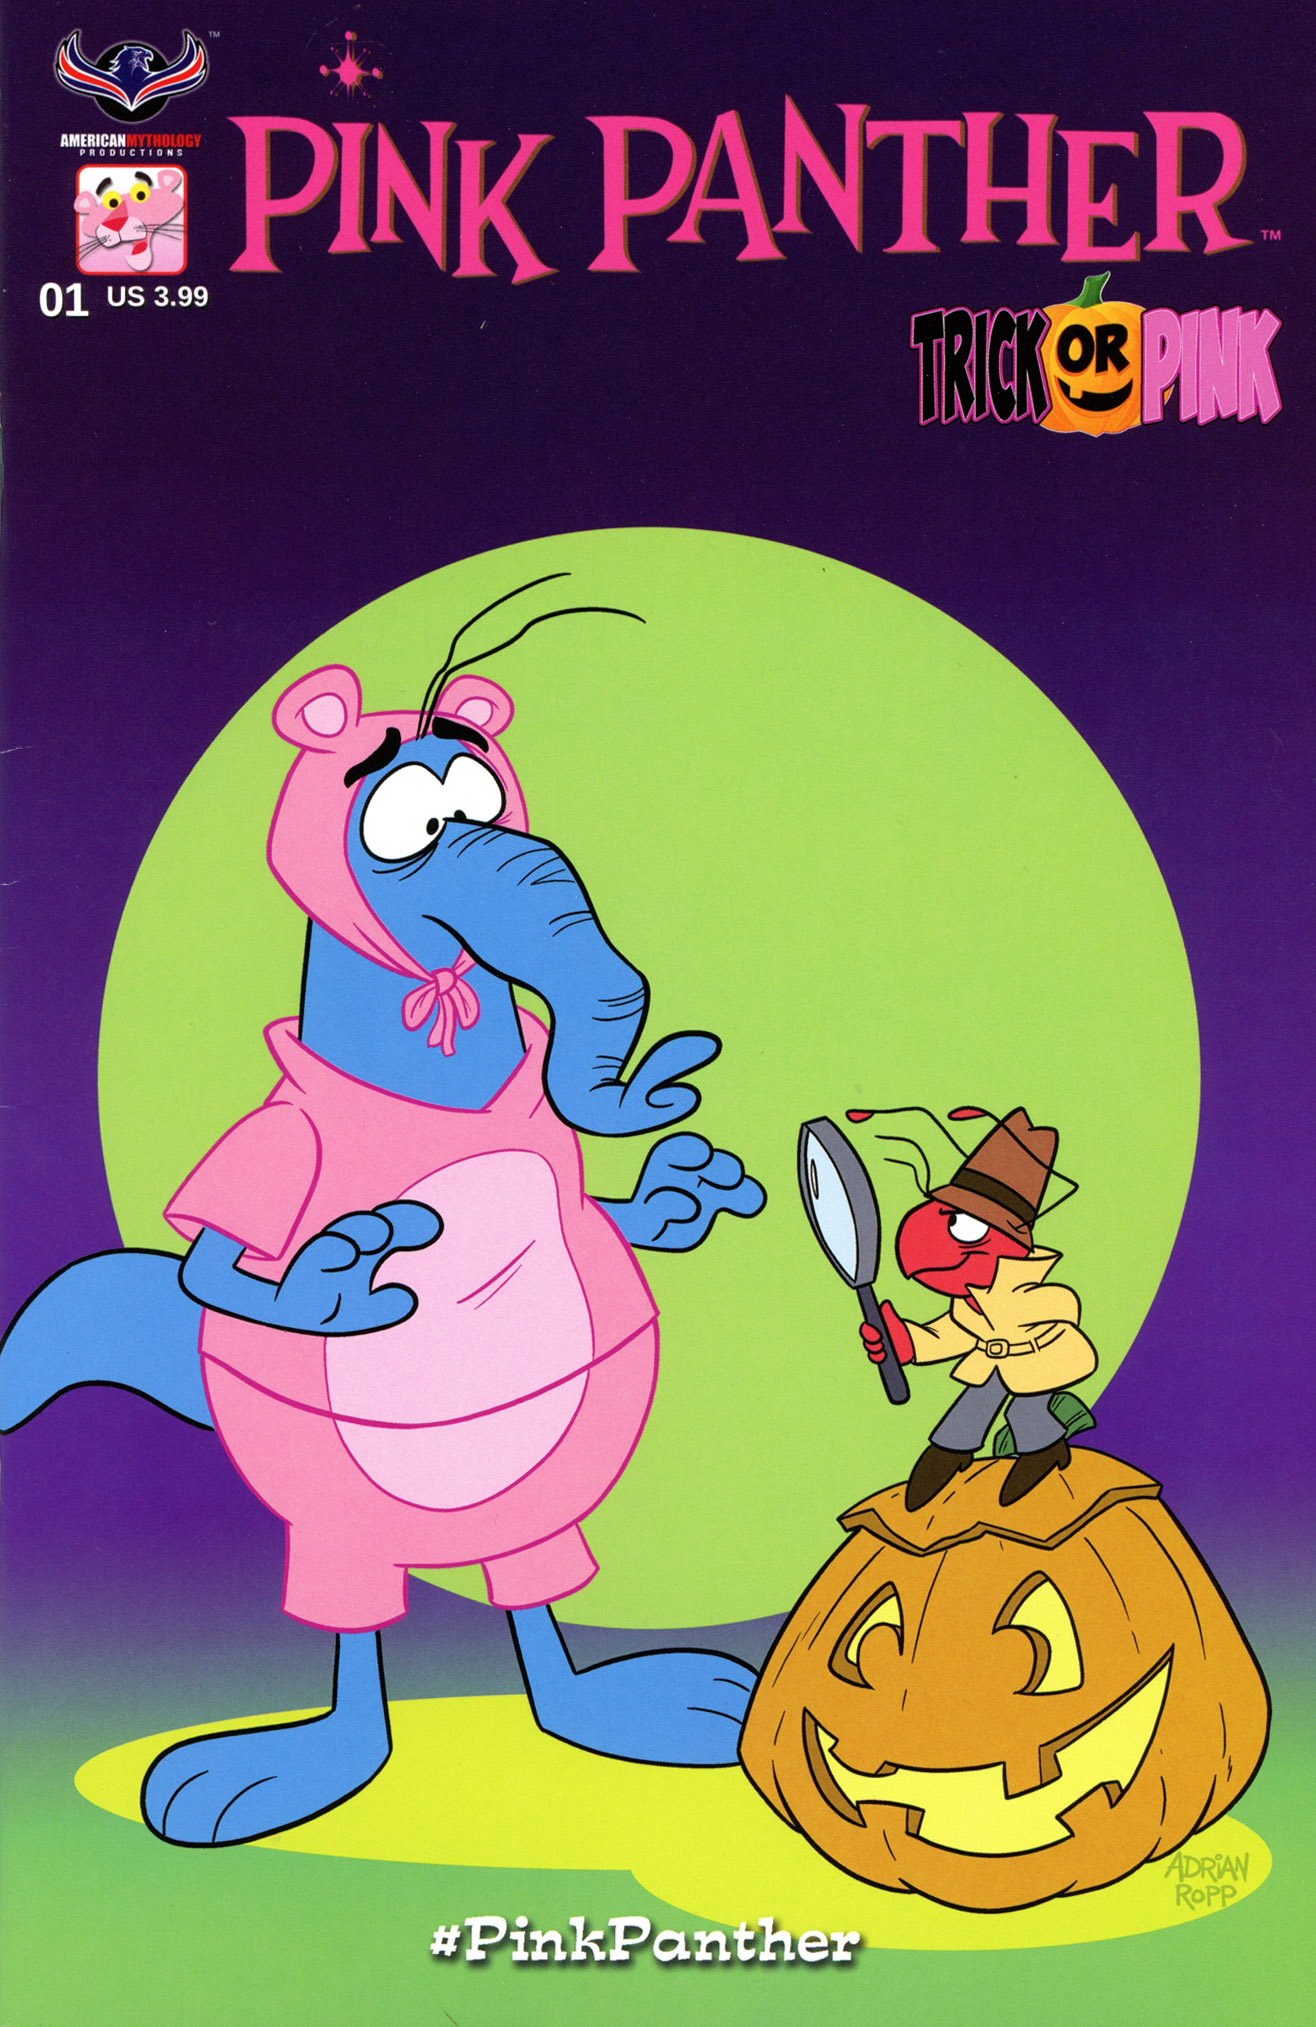 Pink Panther: Trick or Pink Full Page 1